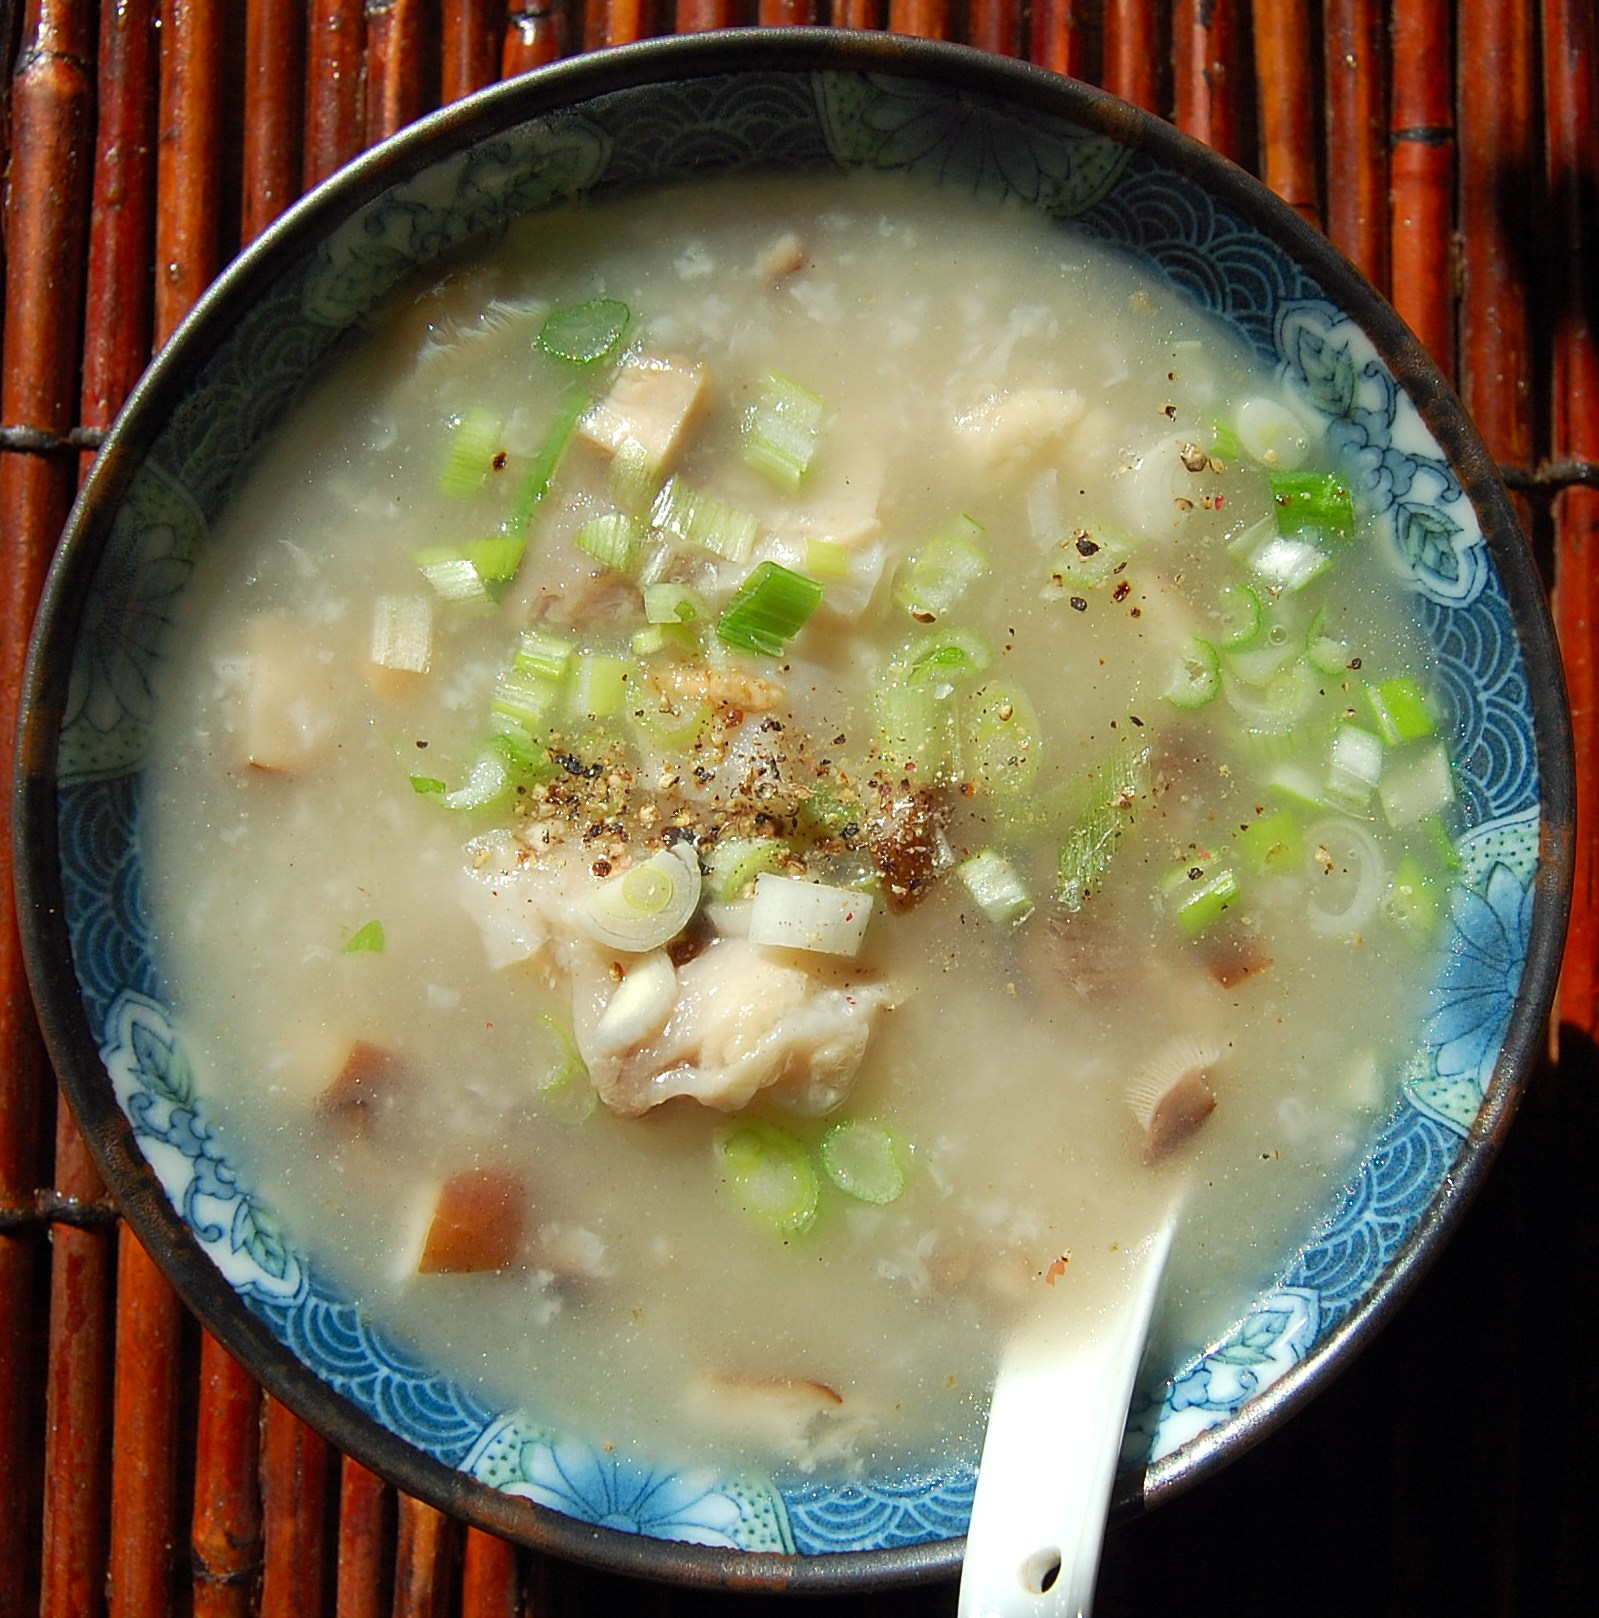 Ox Feet Broth, Miso Soup, and Other Soups - Perfect Health Diet ...